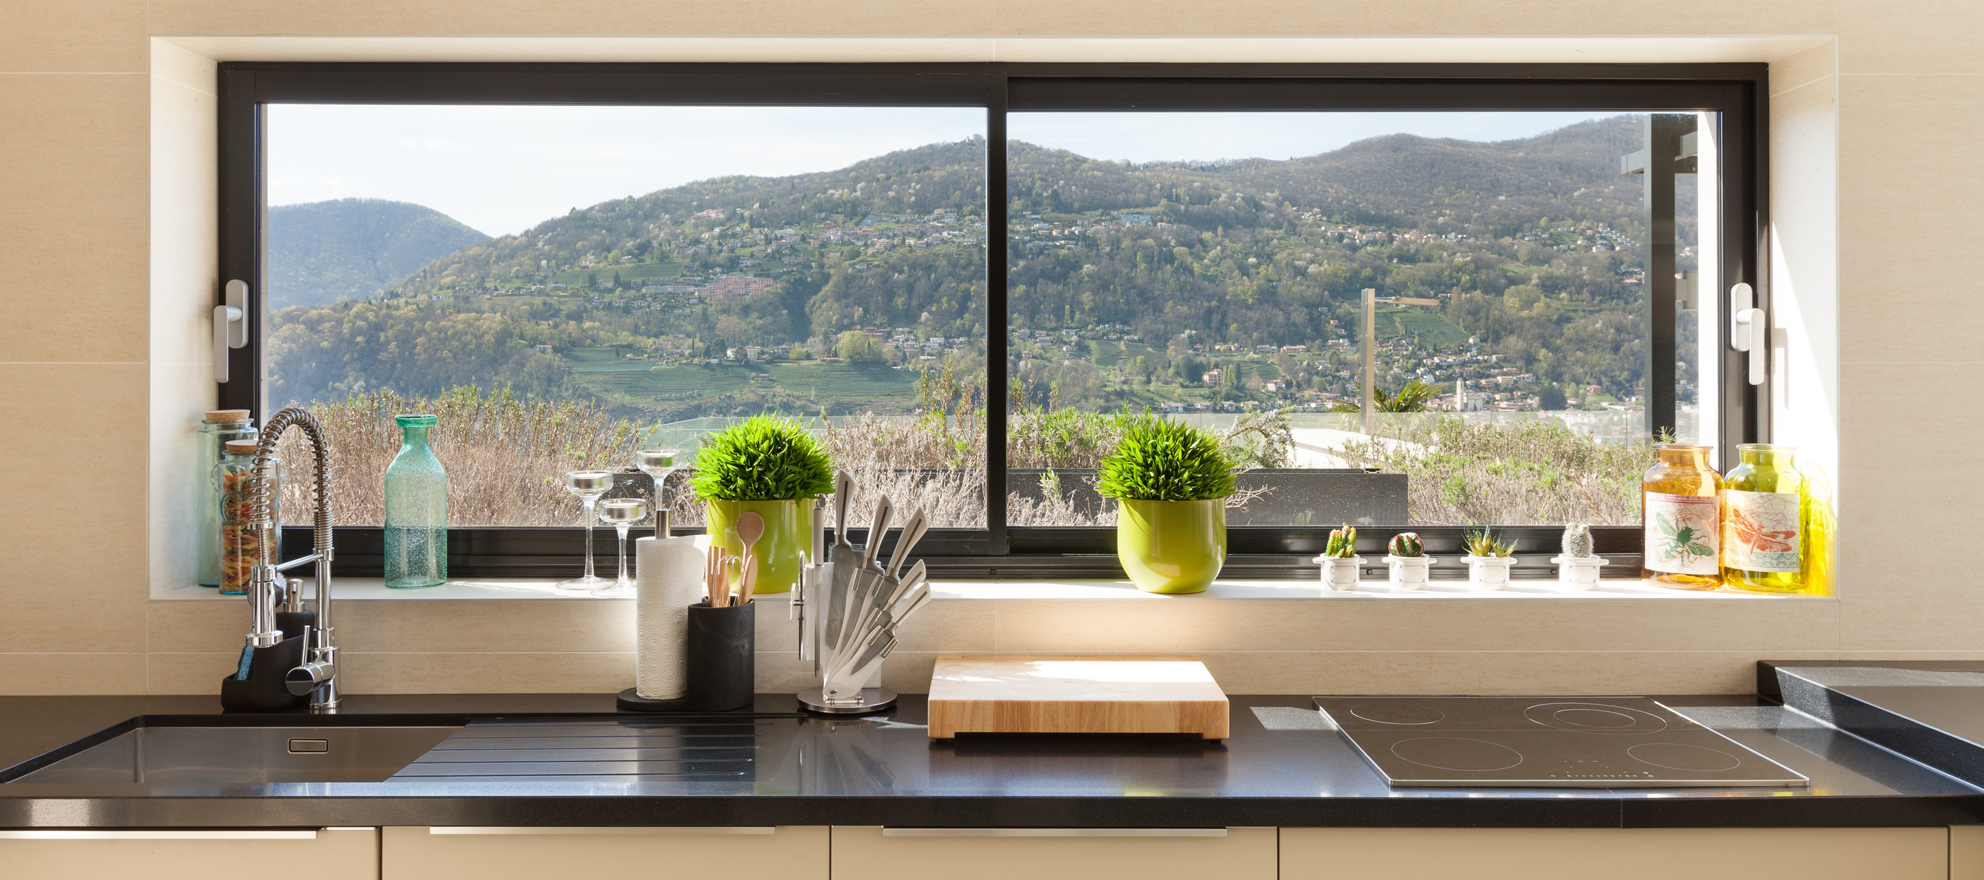 Staging trend reveals harsh truths about real estate values